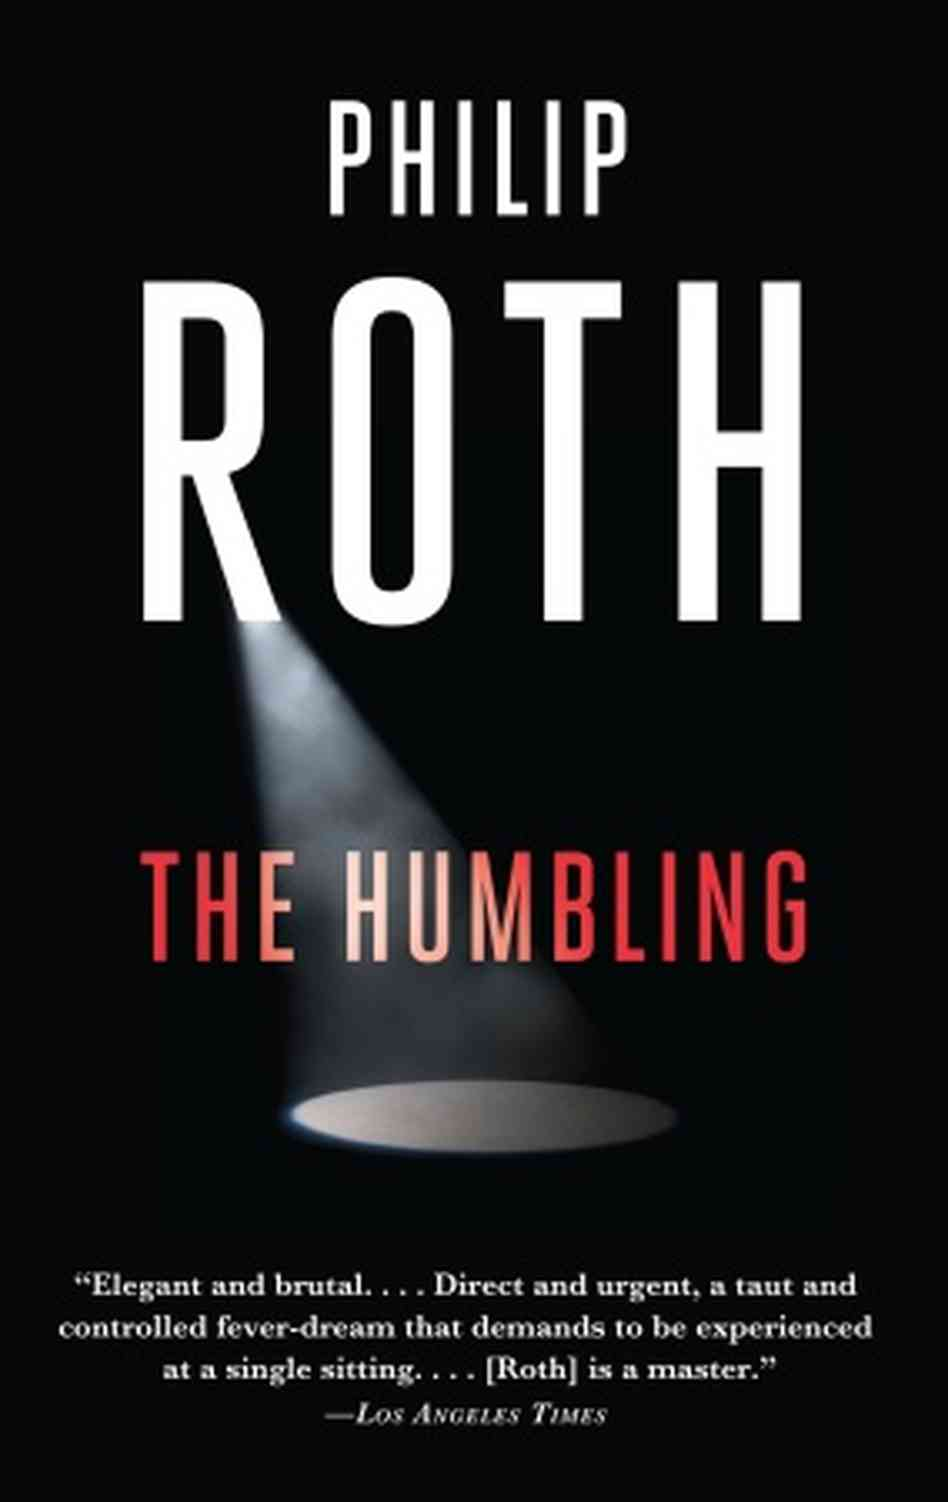 Philip Roth's The Humbling